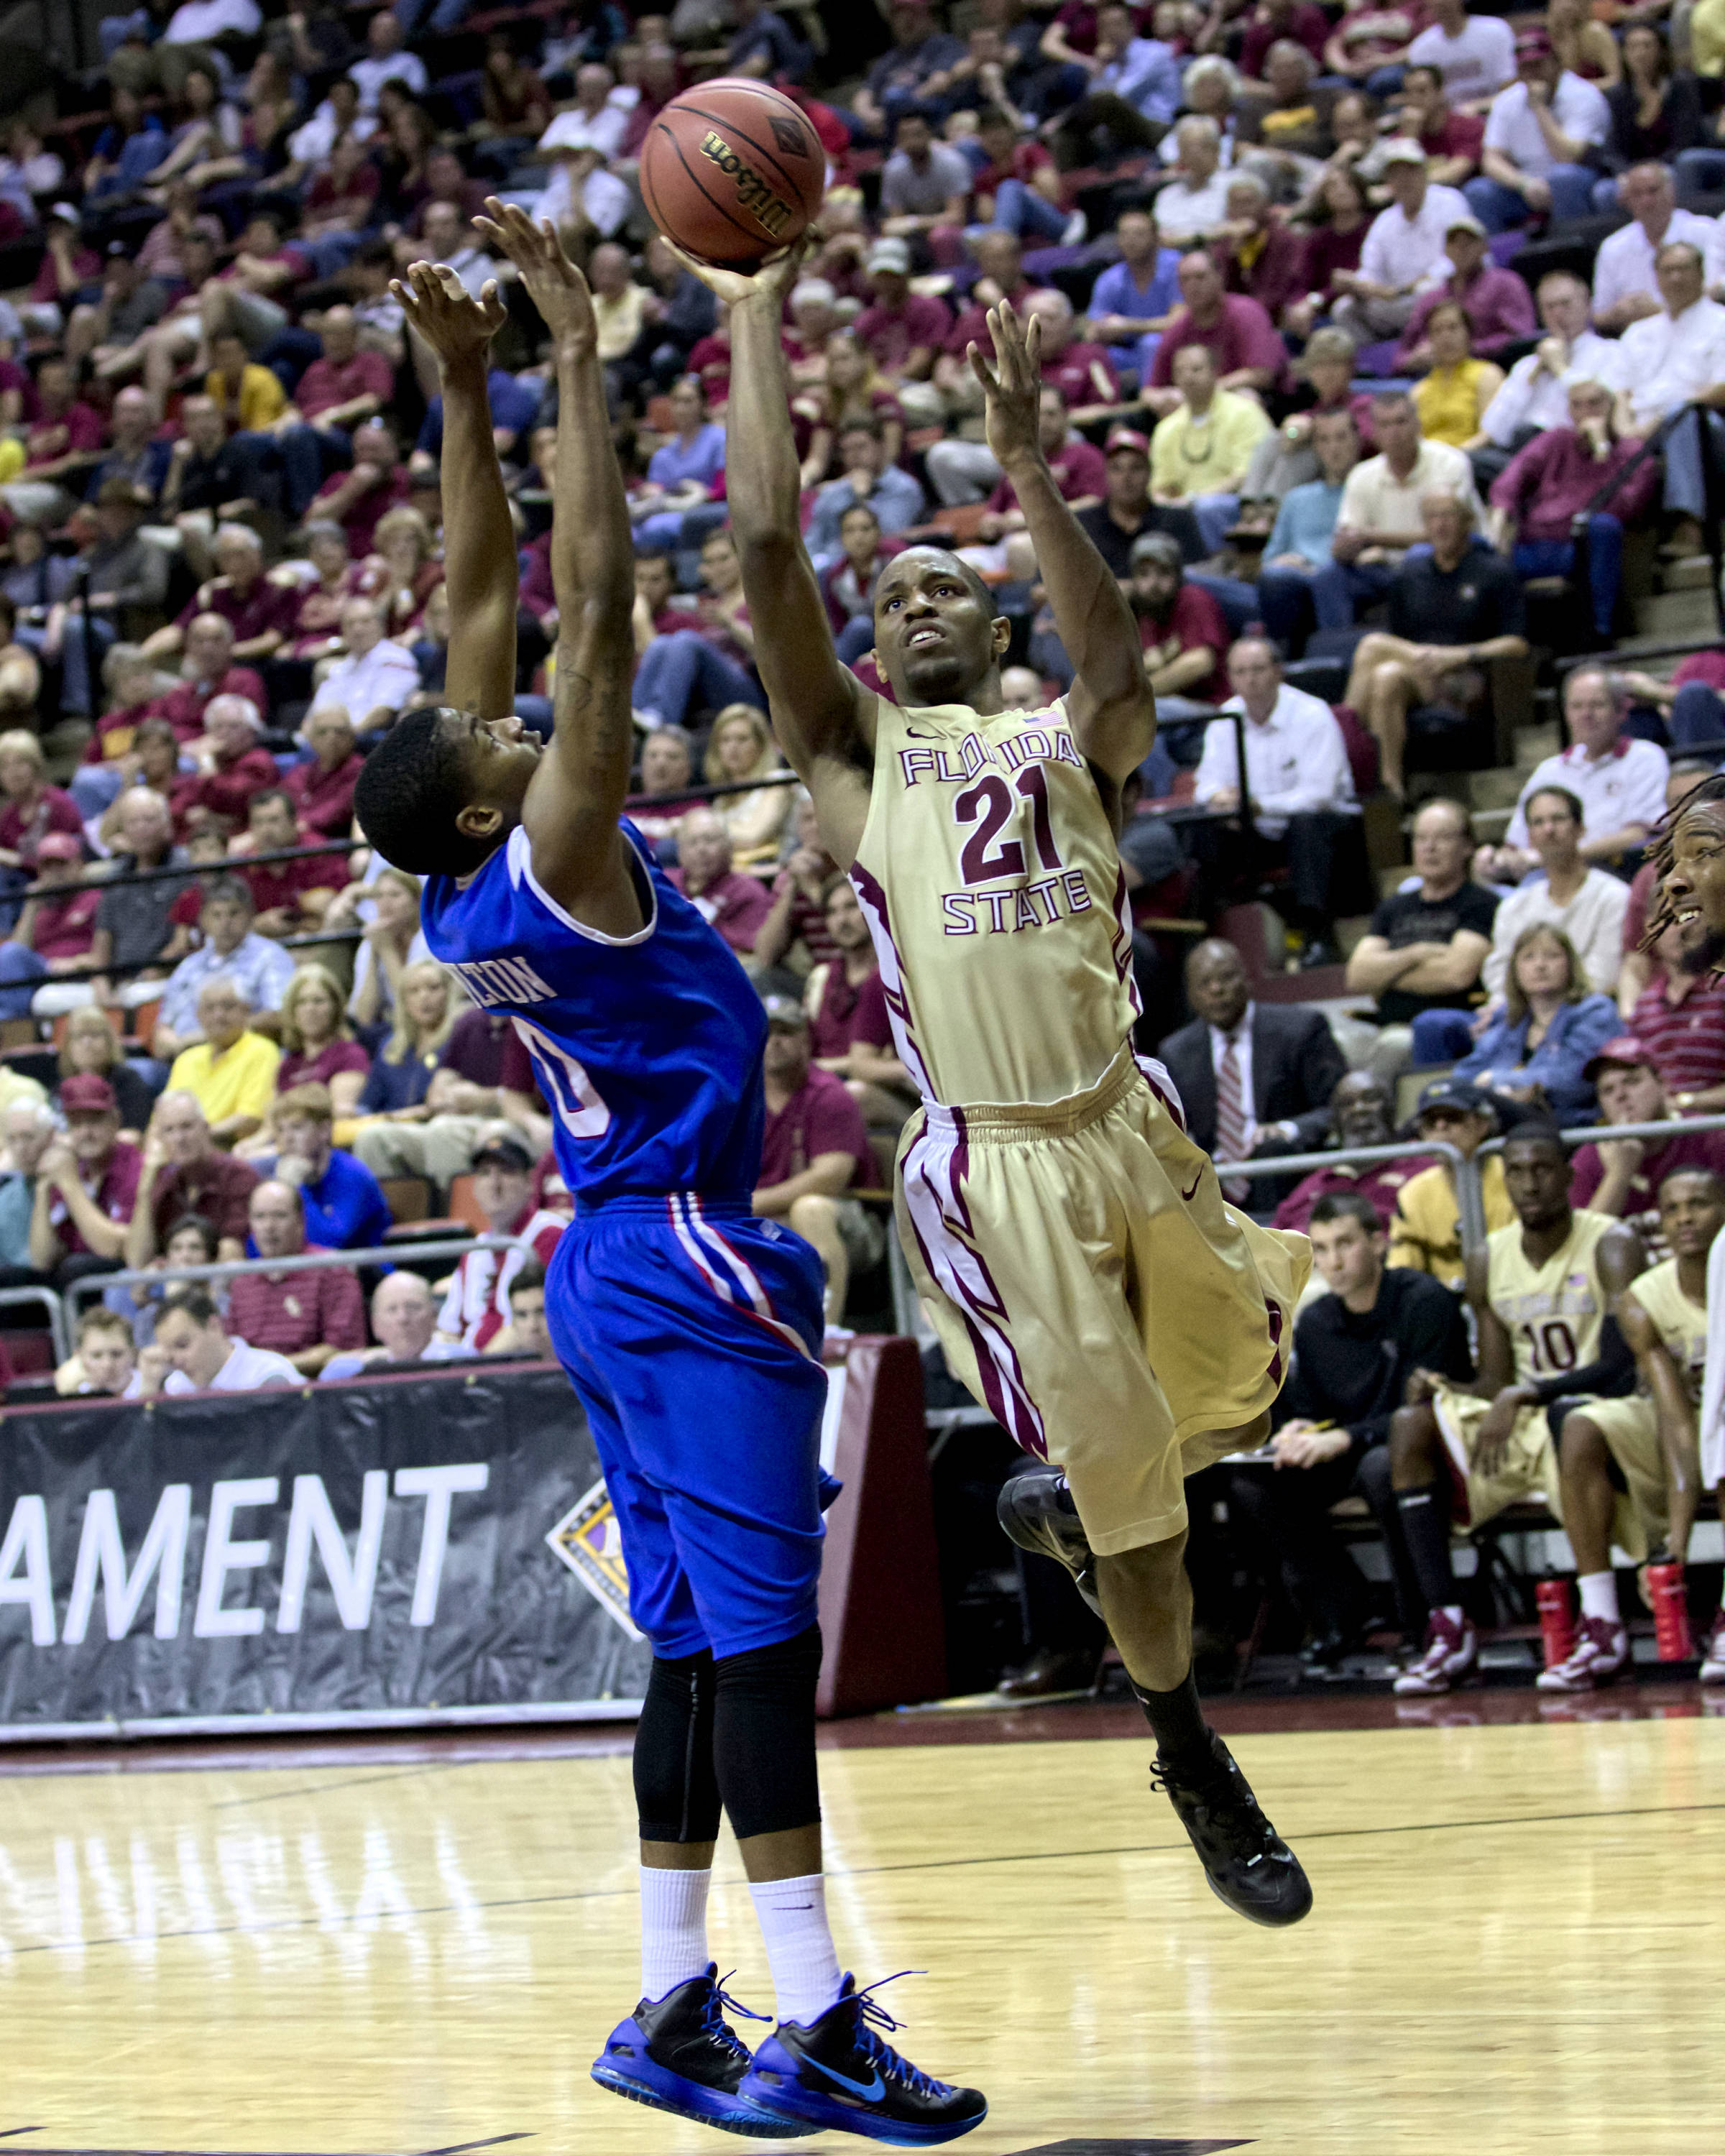 Michael Snaer (21), NIT First Round, FSU vs Louisiana Tech, 03/19/13 . (Photo by Steve Musco)